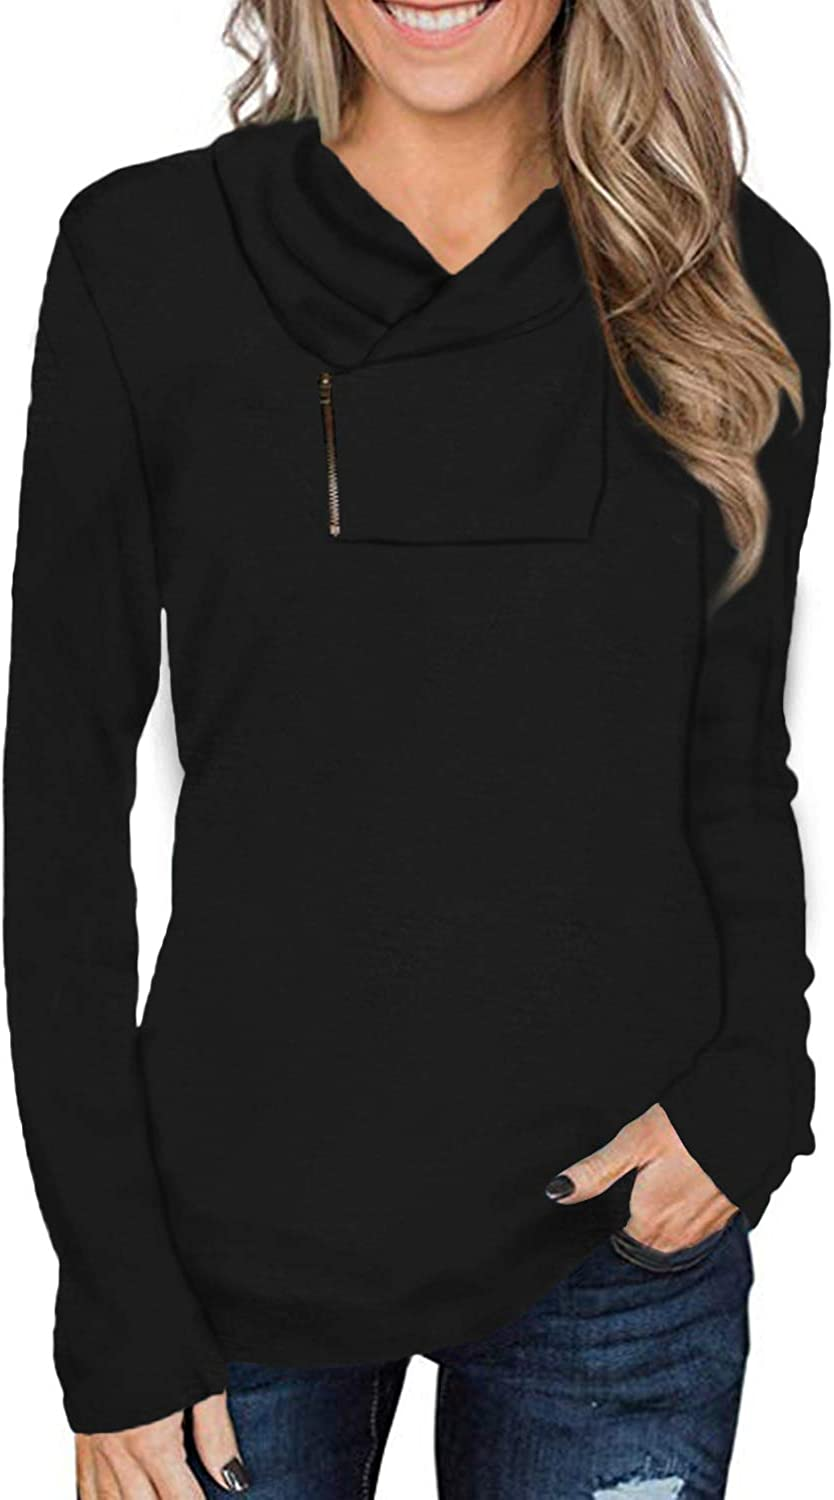 Cyanstyle Women's Long Sleeve Pullover Zipper Cowl Neck Tops Solid Sporty Sweatshirts: Clothing